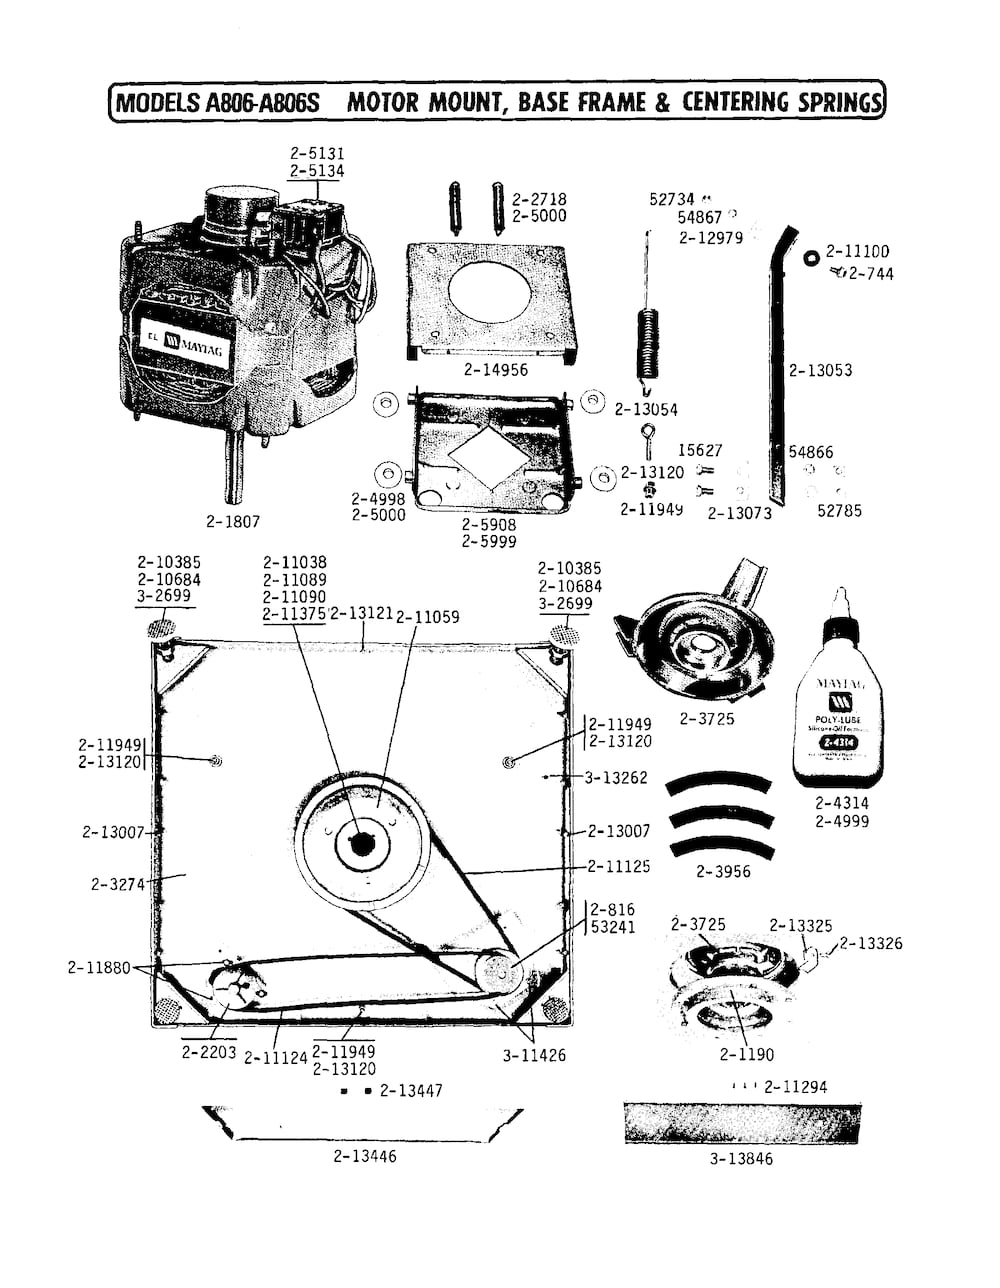 Maytag front load washer parts diagram automotive parts for Washing machine motor repair